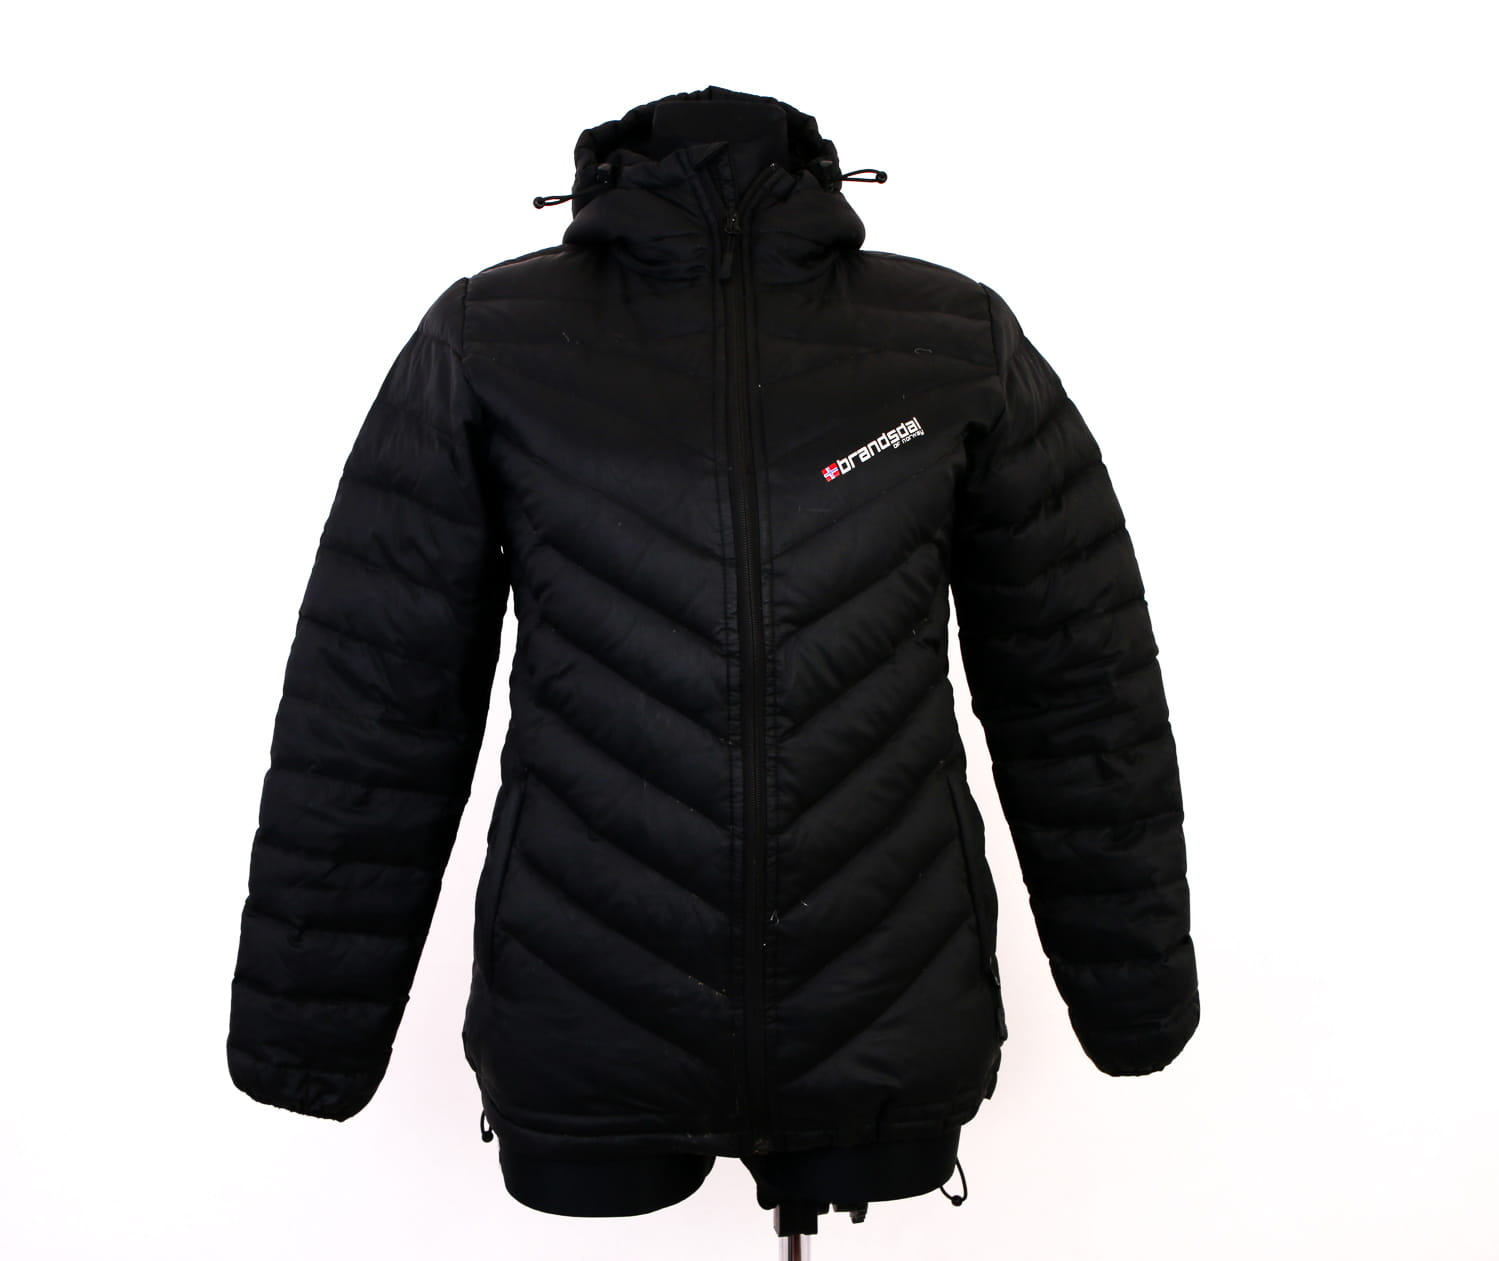 Details about *Brandsdal of Norway Mens Down Jacket Black M